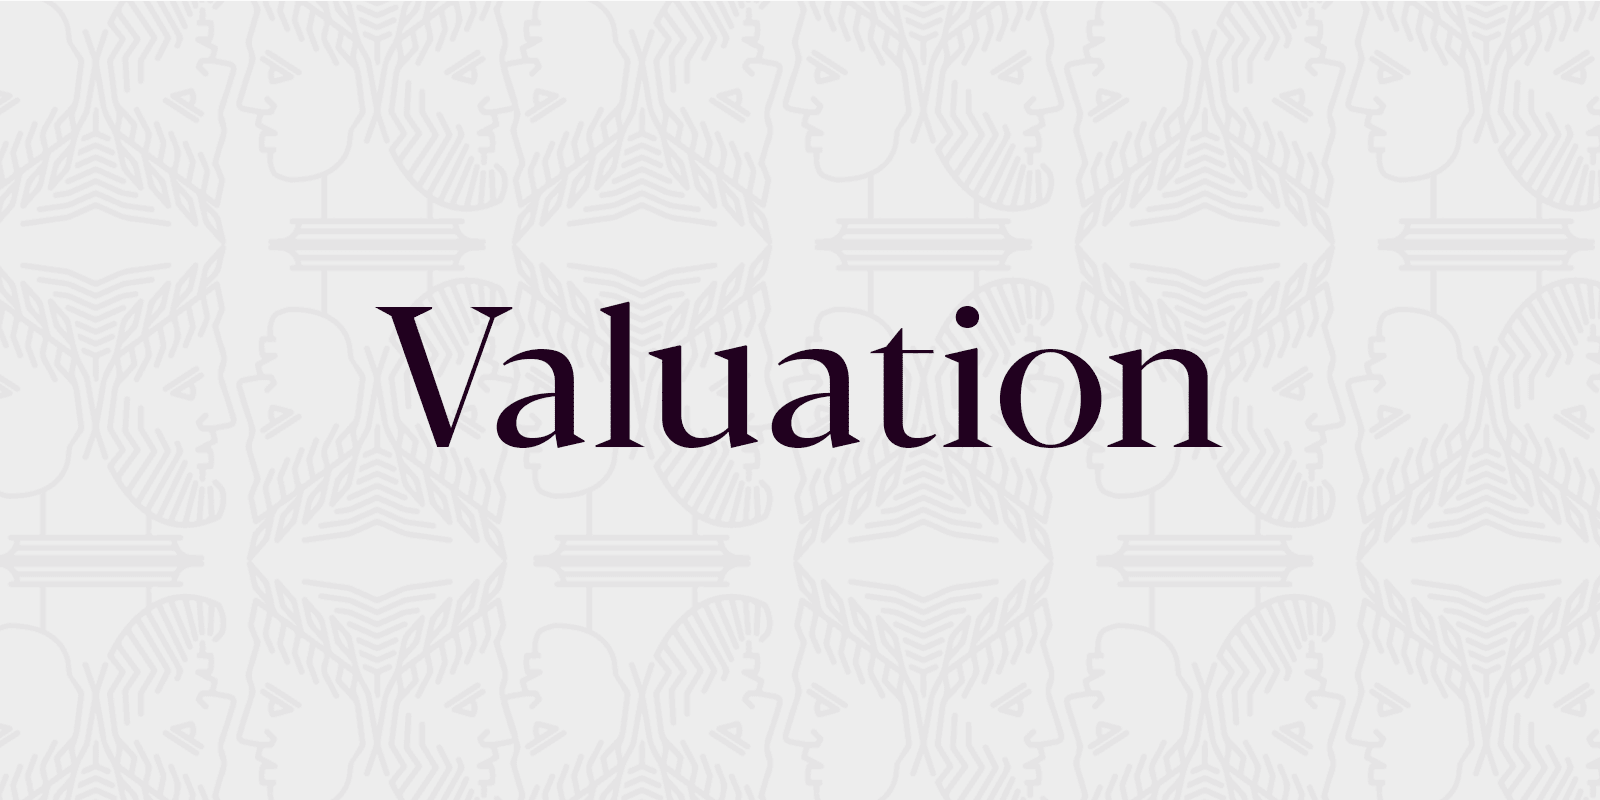 Tab for valuation section of website